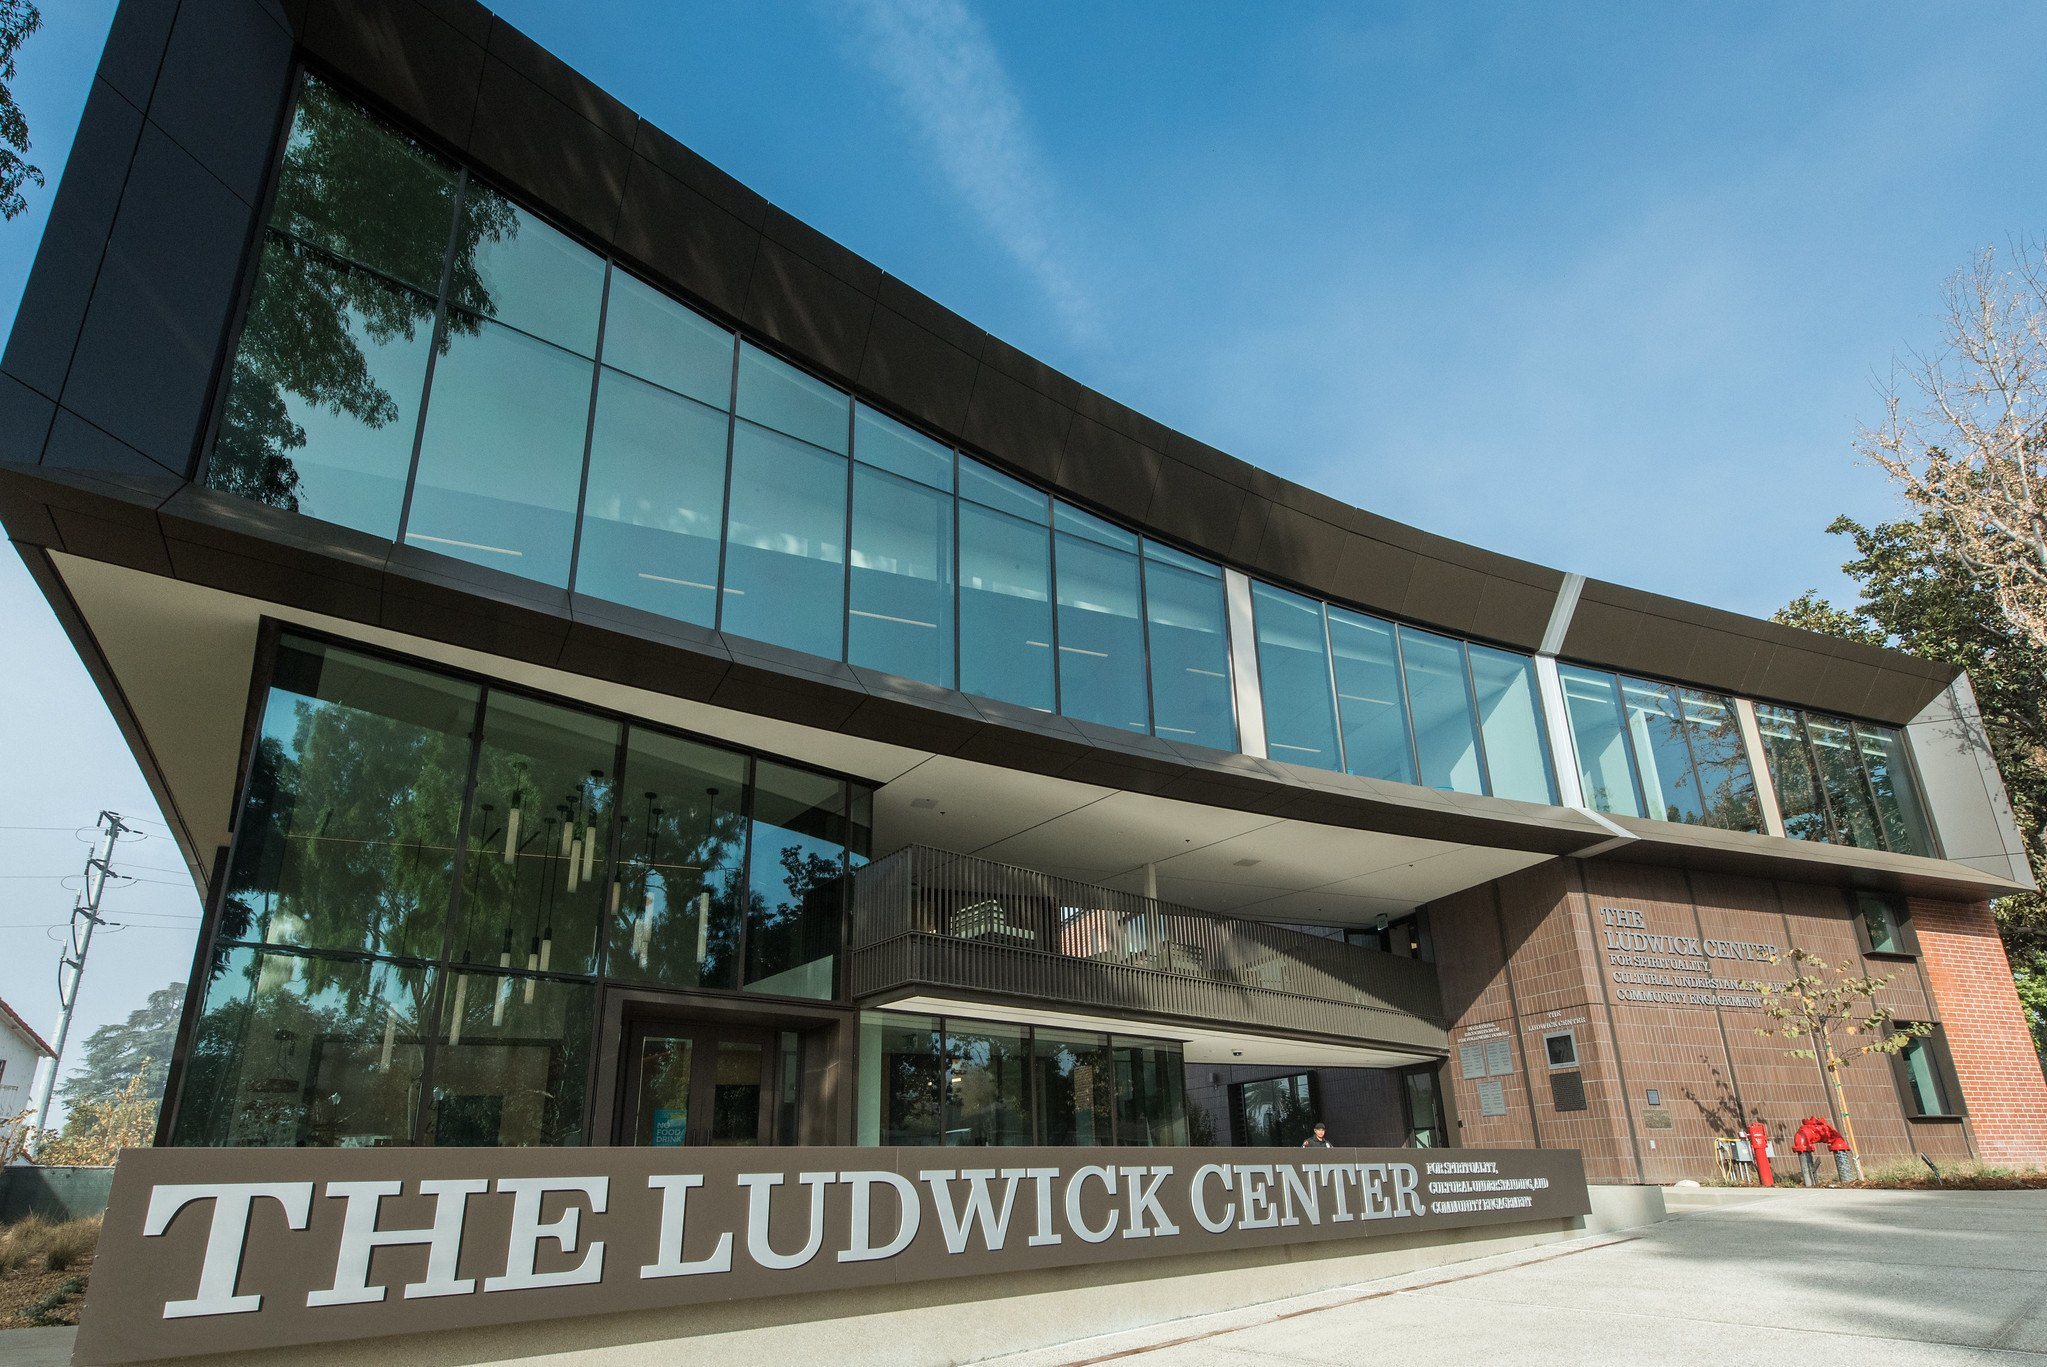 Ludwick Center